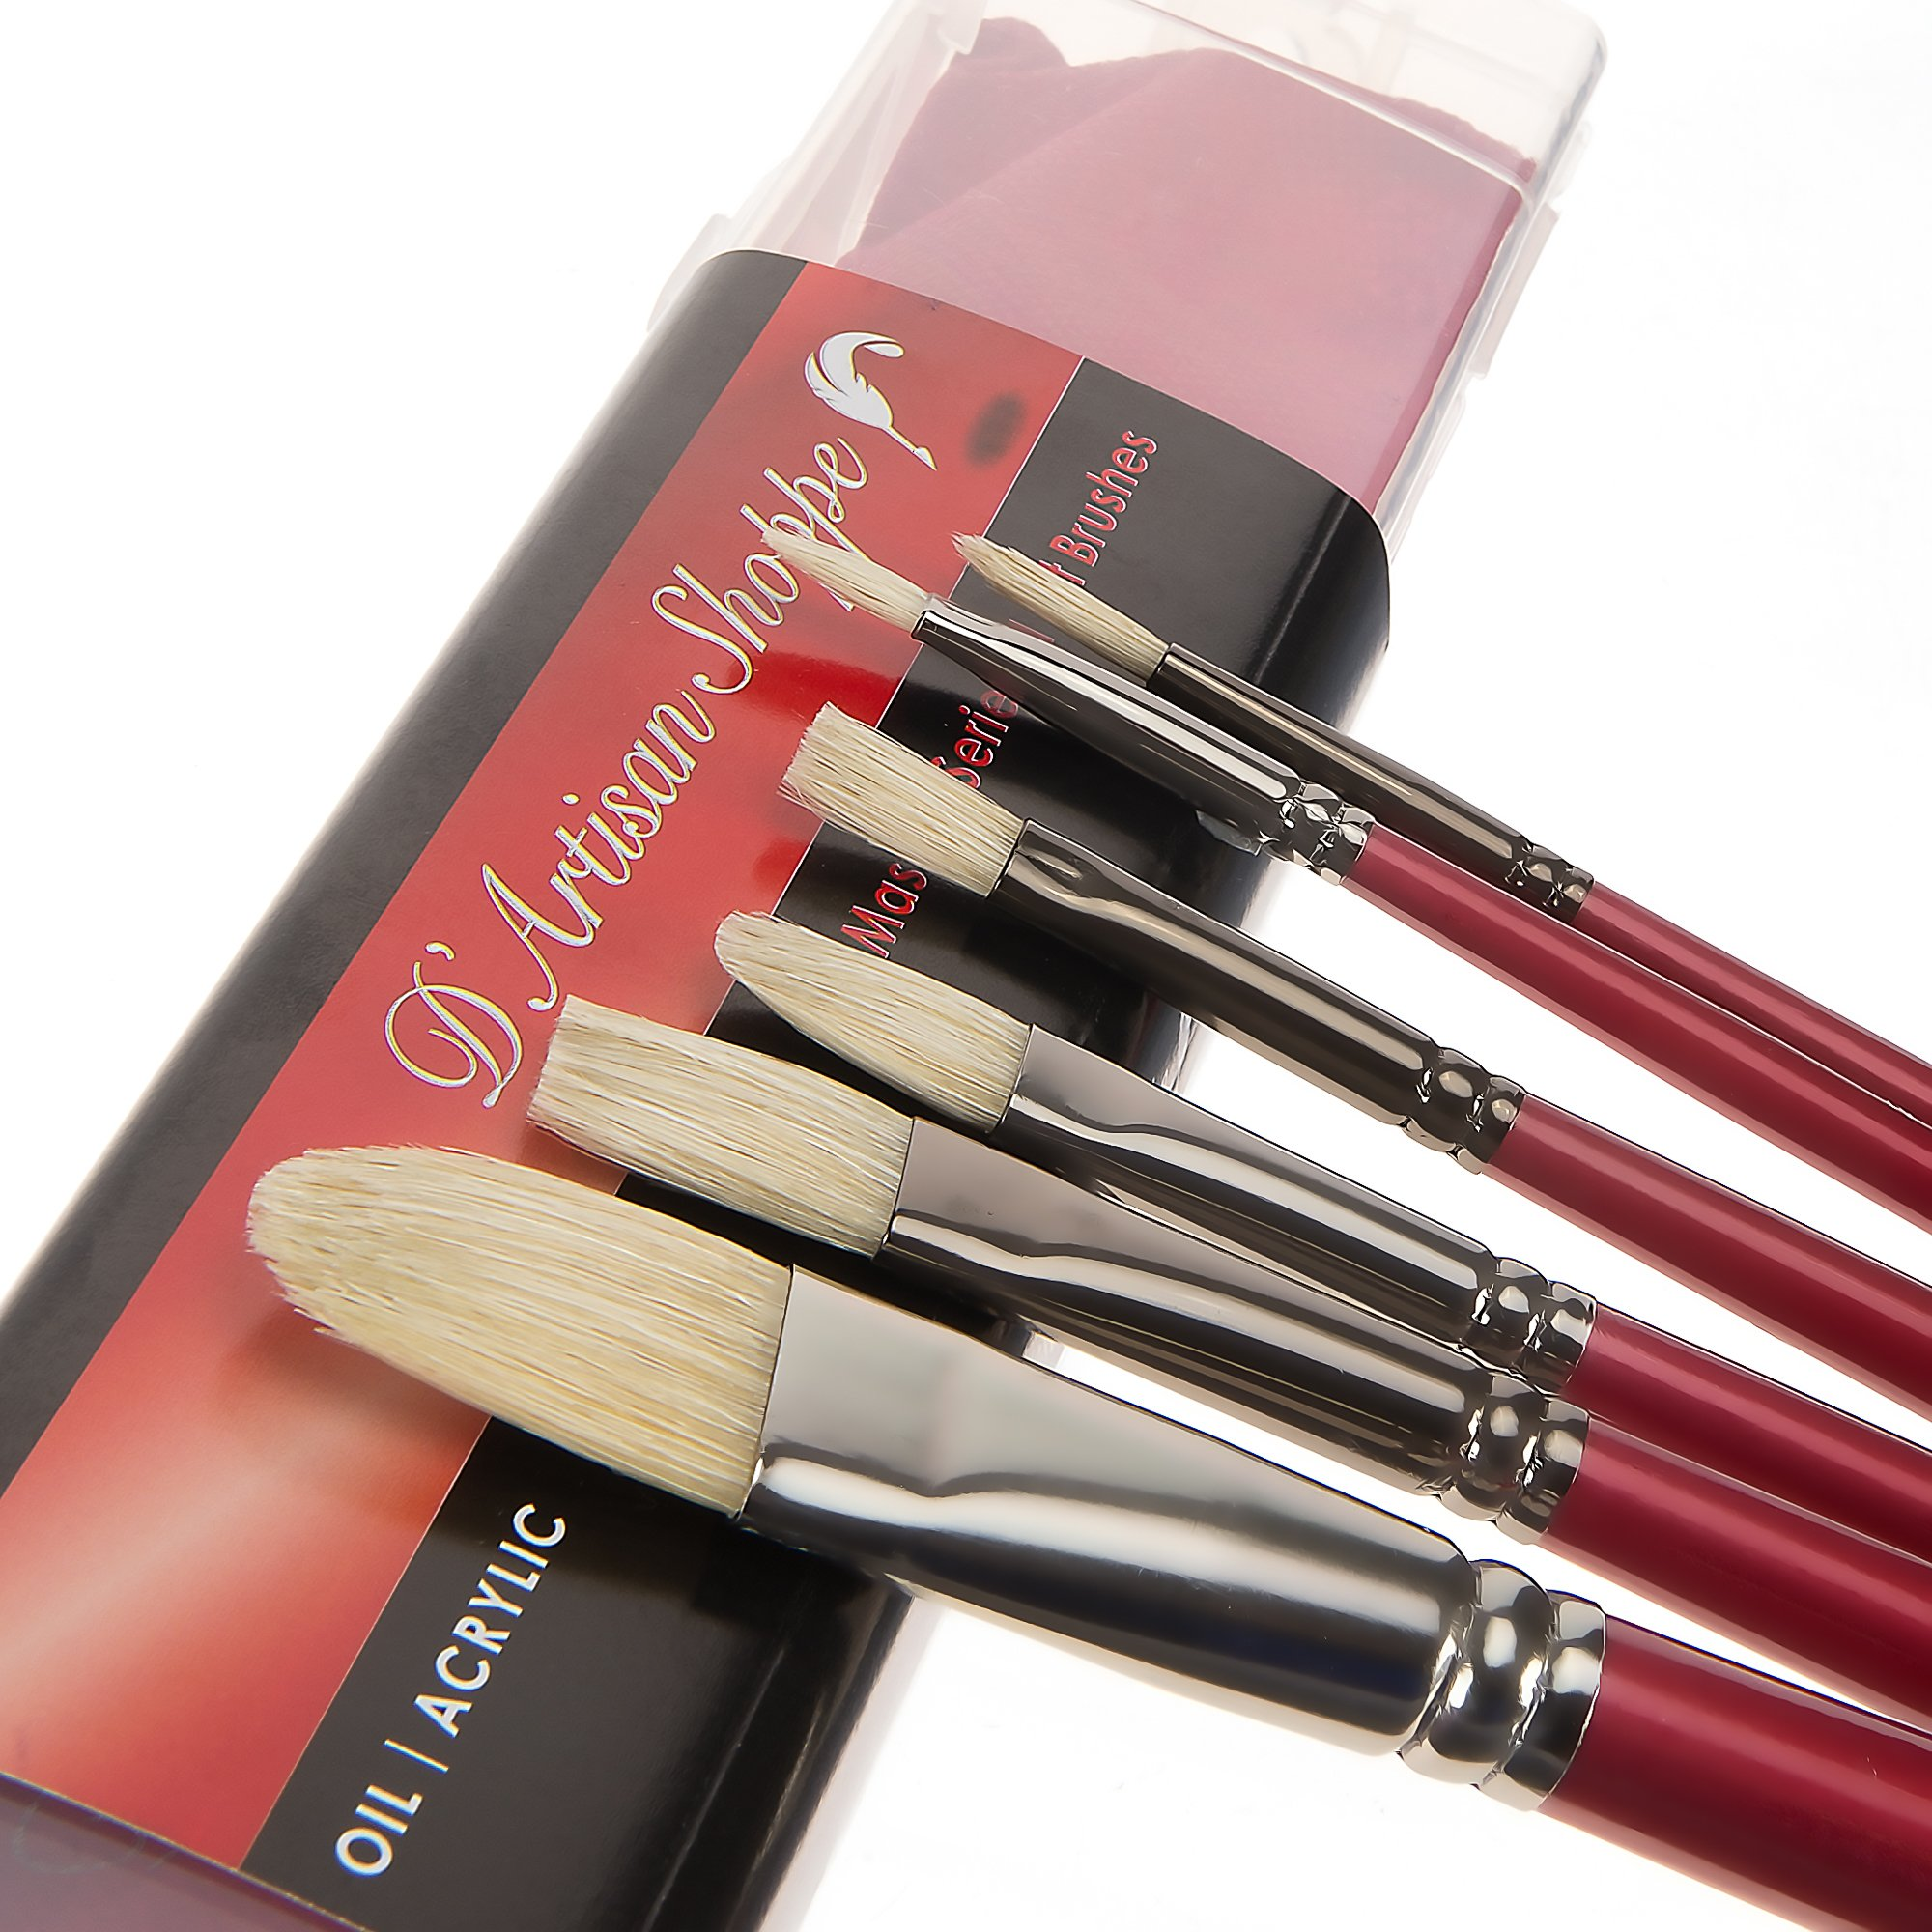 Oil Acrylic Paint Brushes 100% Natural Chungking Hog Hair Bristle in Portable Organizer Plastic Container. 6pc Filbert Flat and Round Paintbrush Set by D'Artisan Shoppe (Image #8)